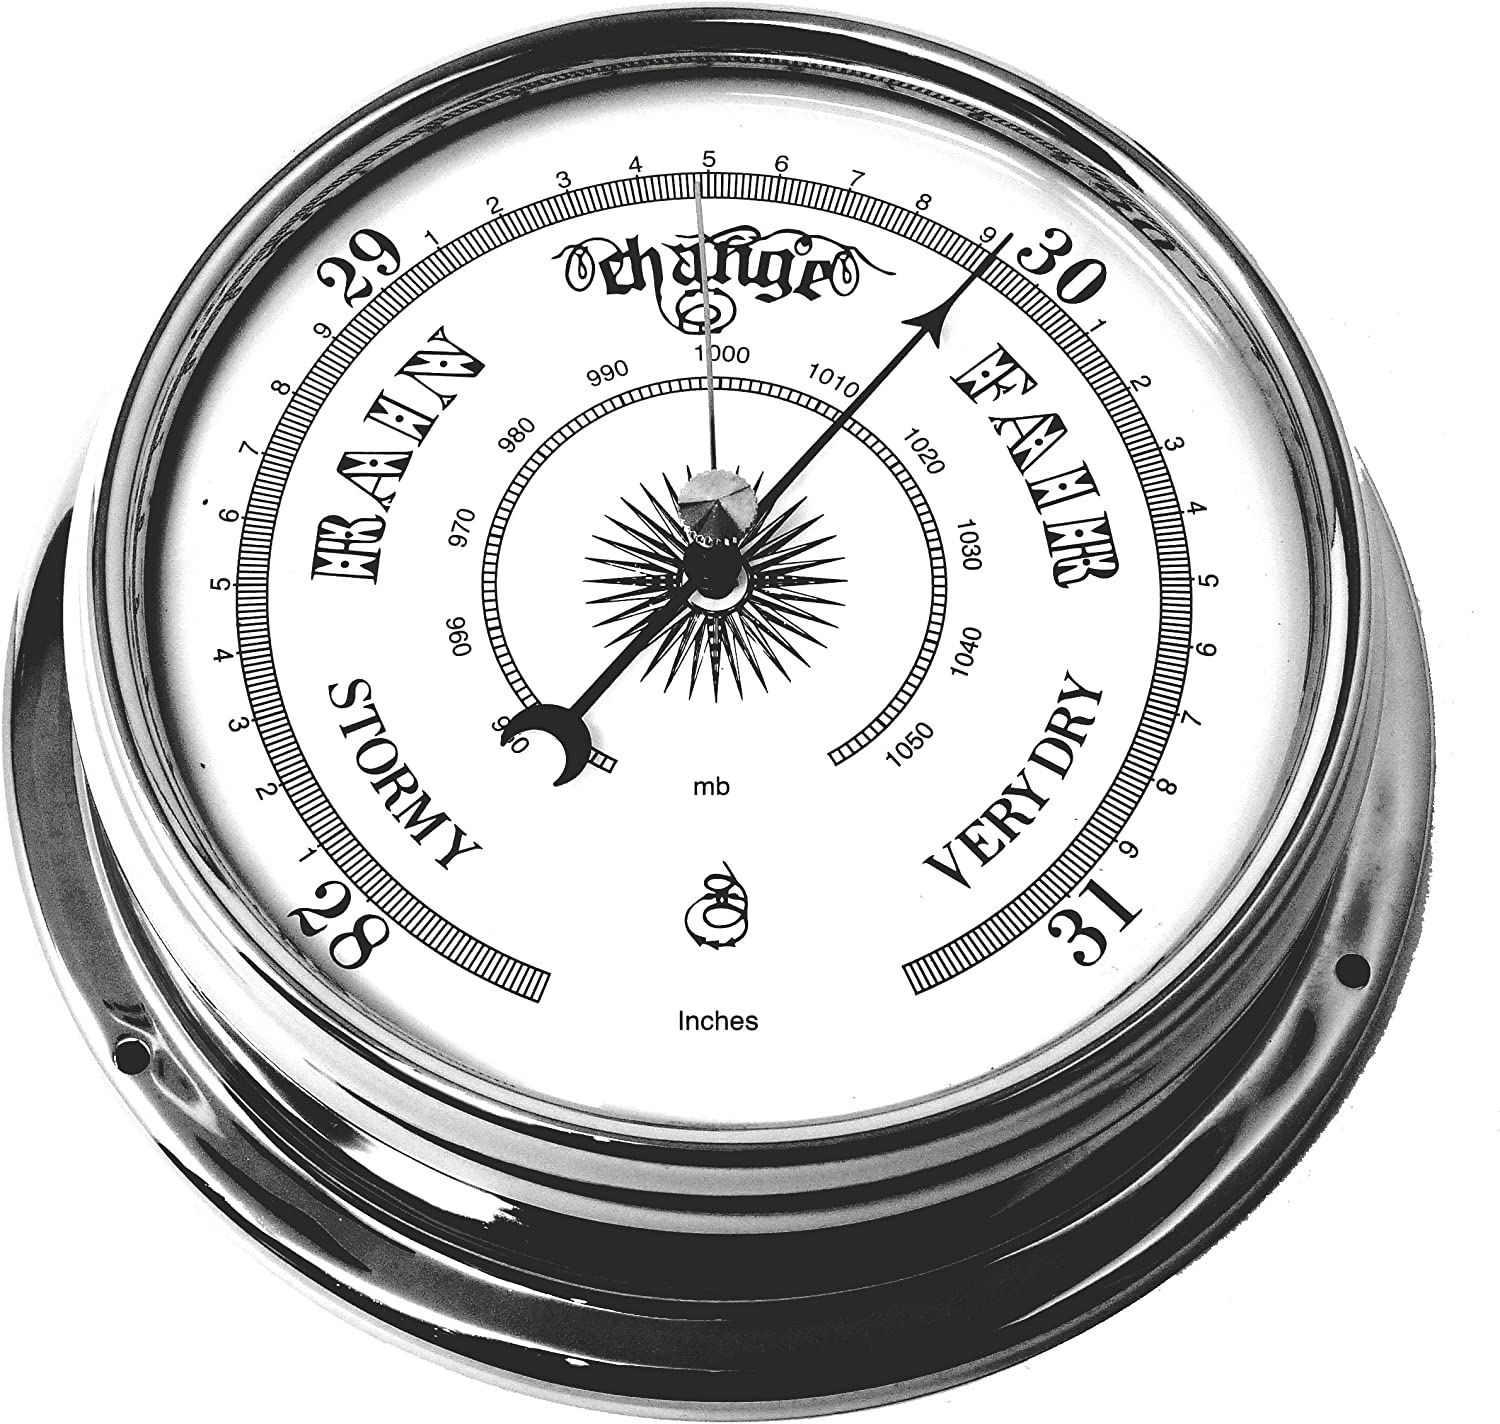 Tabic Traditional Barometer Chrome Las Vegas Mall OFFicial store Heav Brass Plated